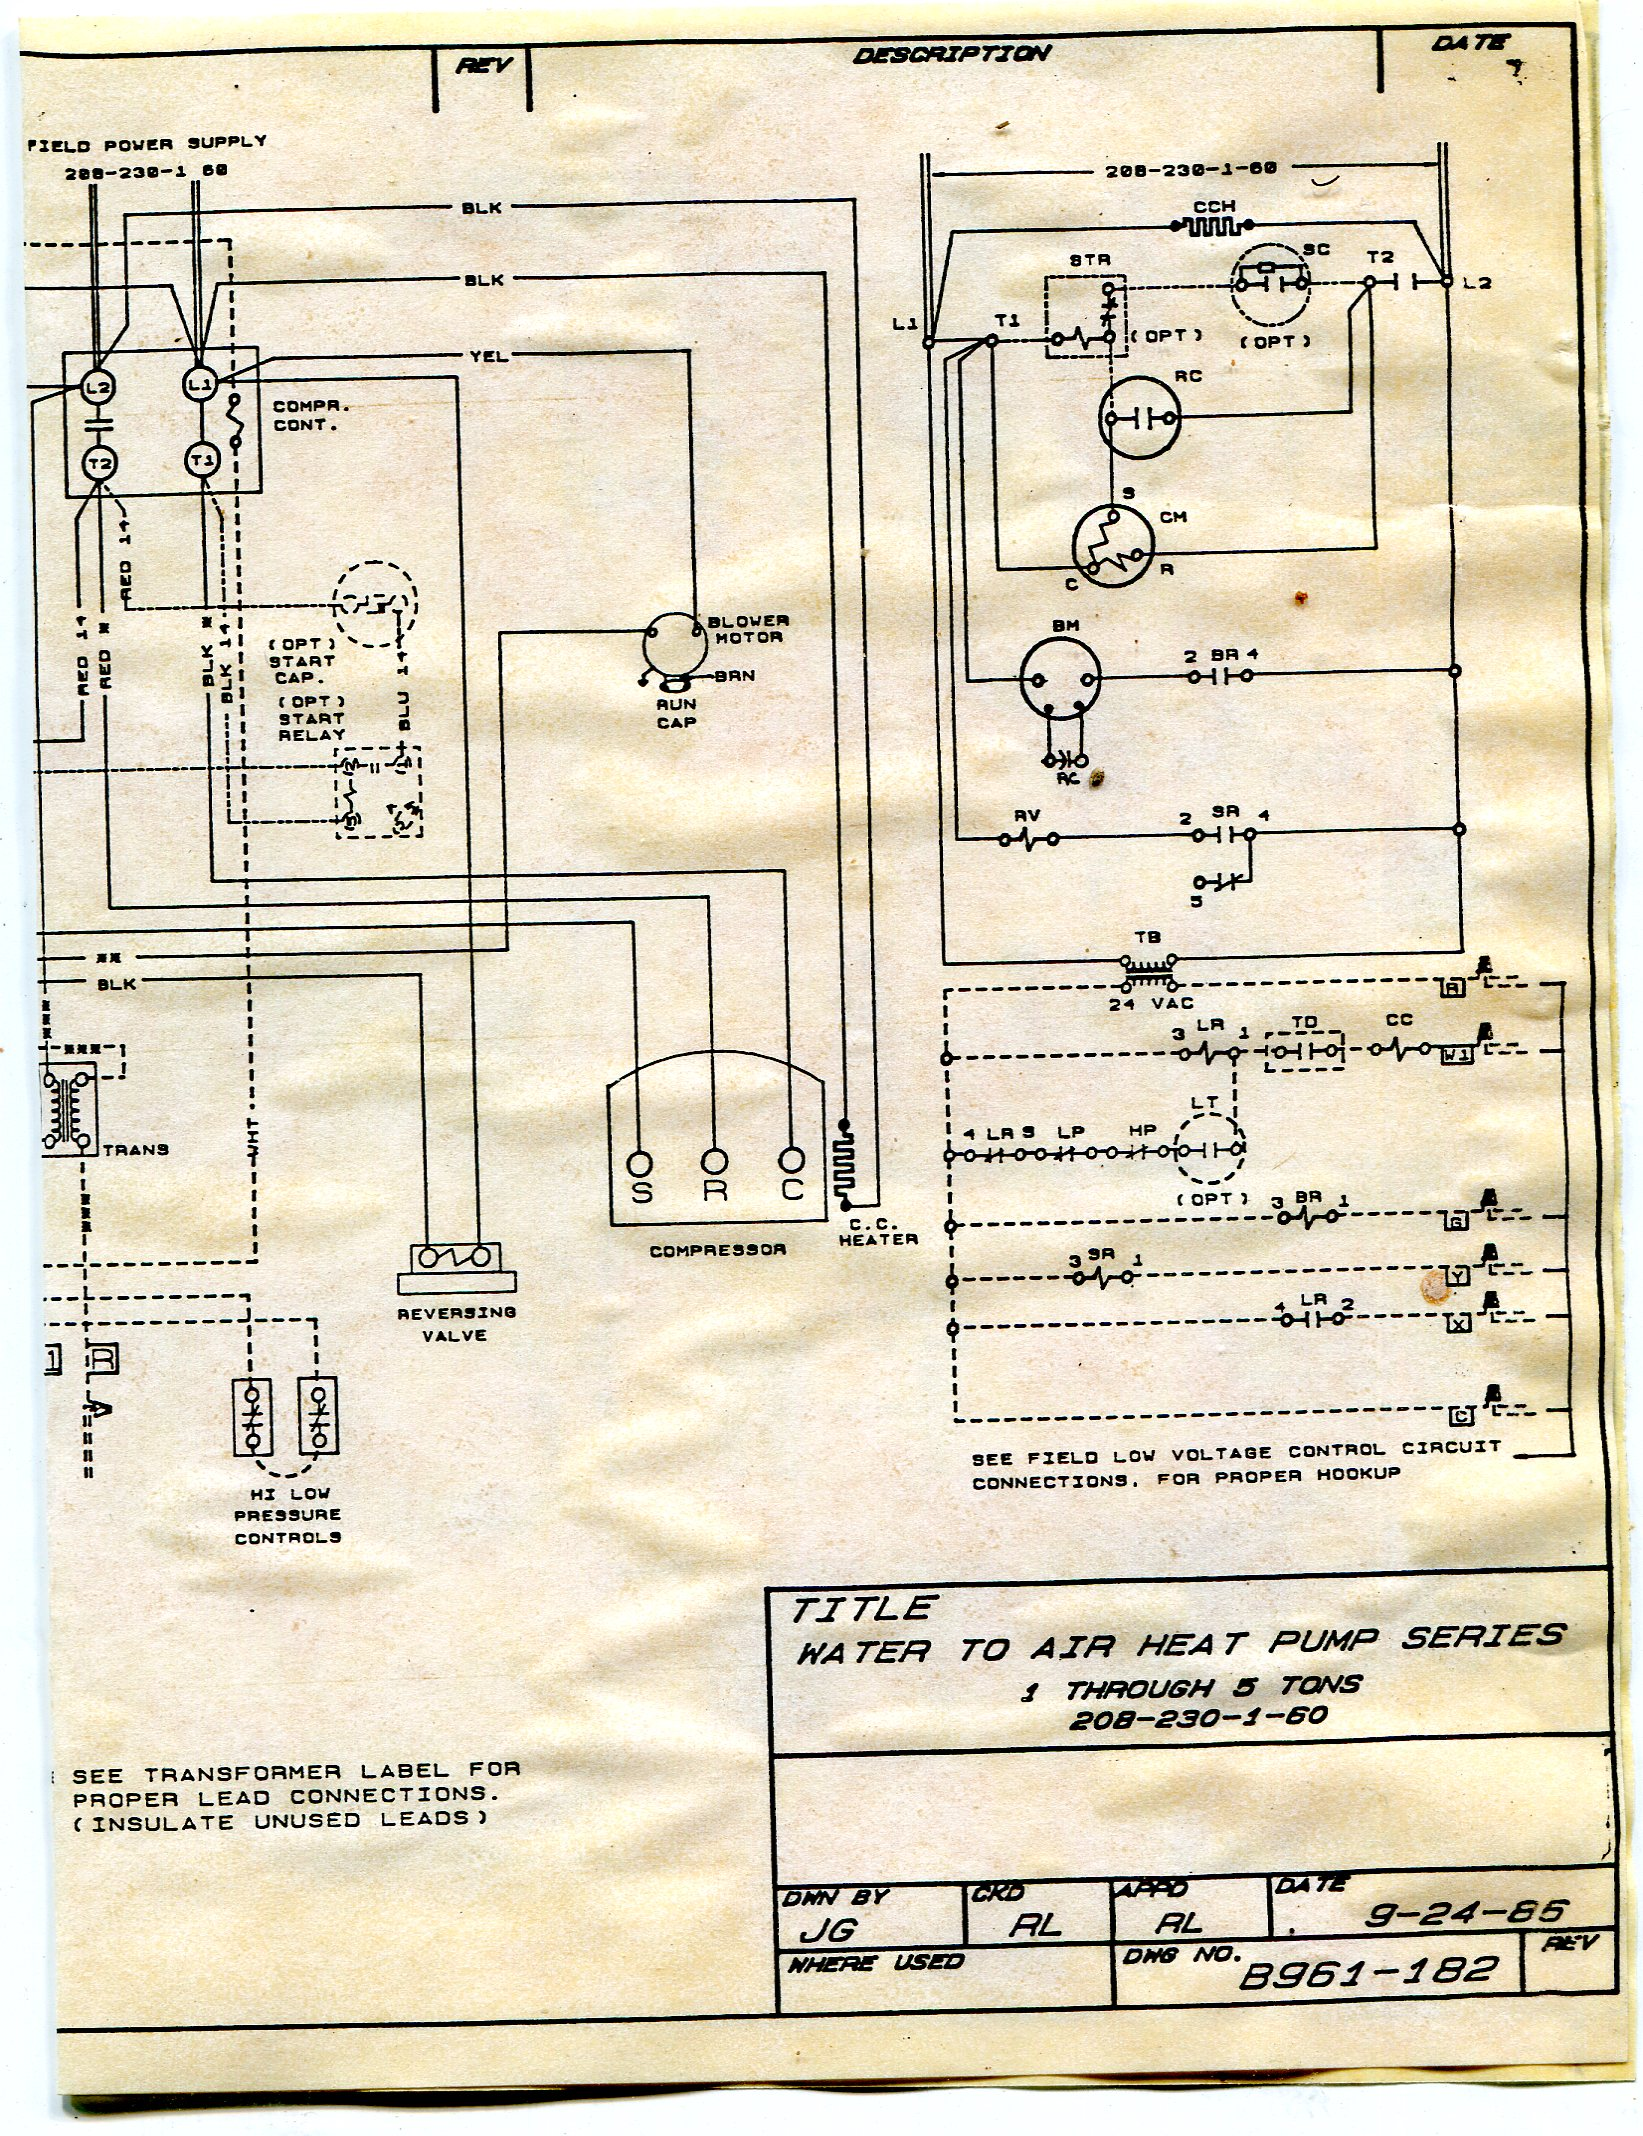 Do you have an email address where I can send you wiring ... Addison Heat Pump Wiring Diagram on